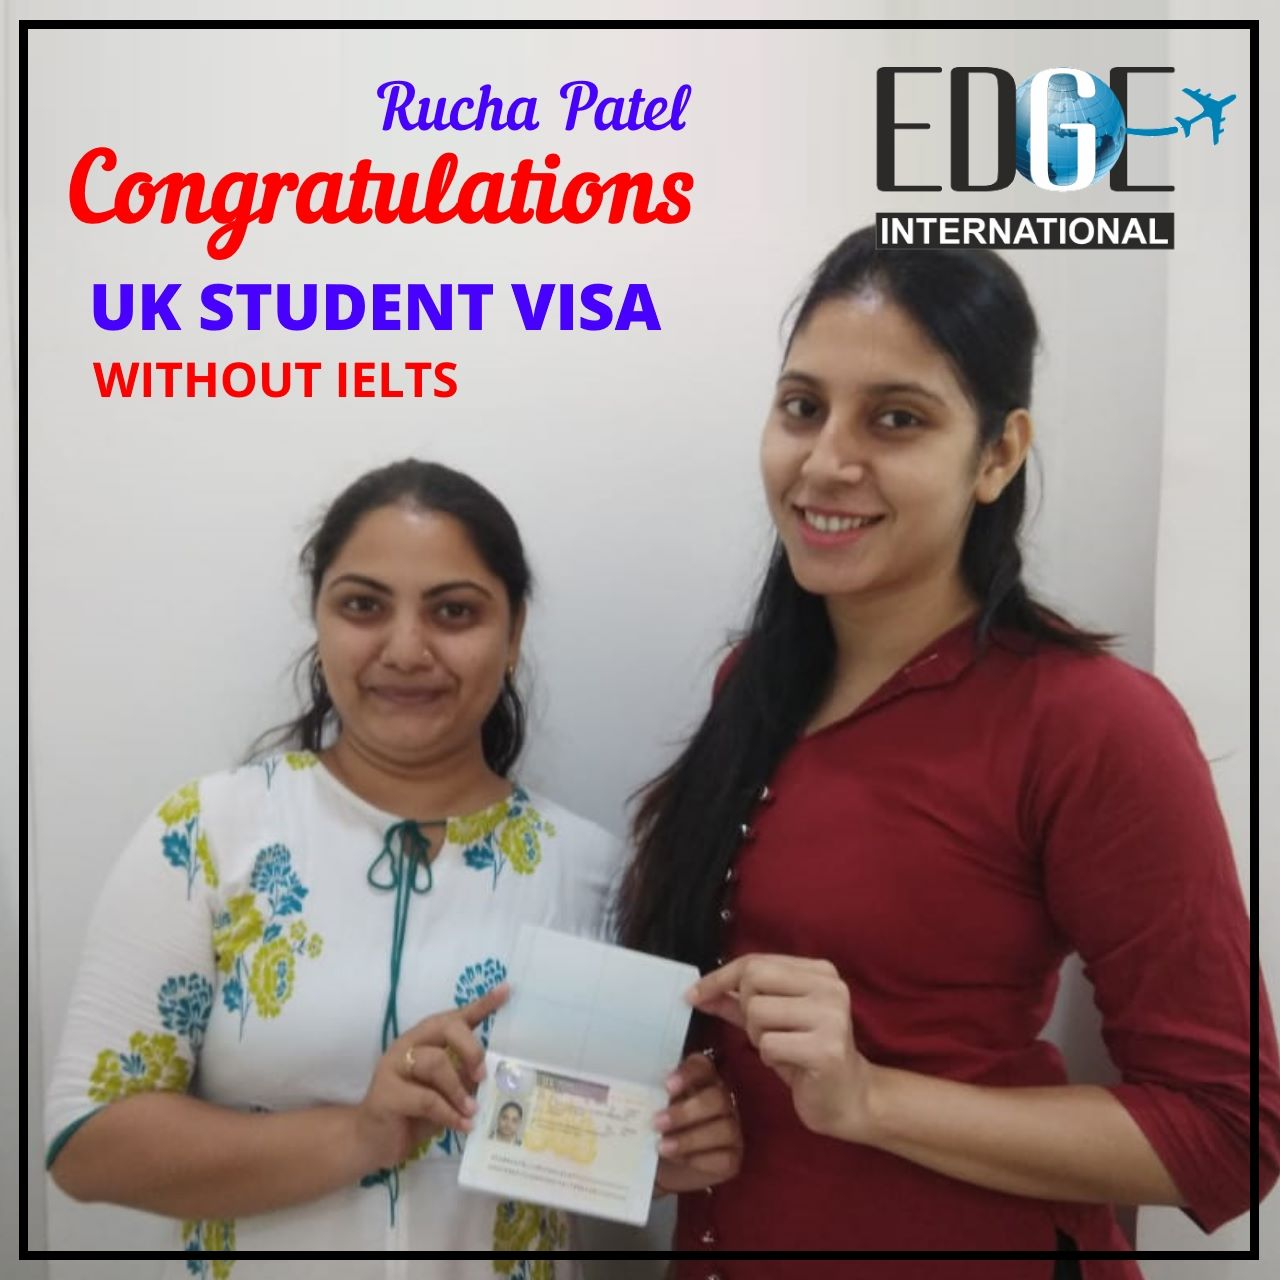 Congratulations to Rucha Patel for getting UK Student visa